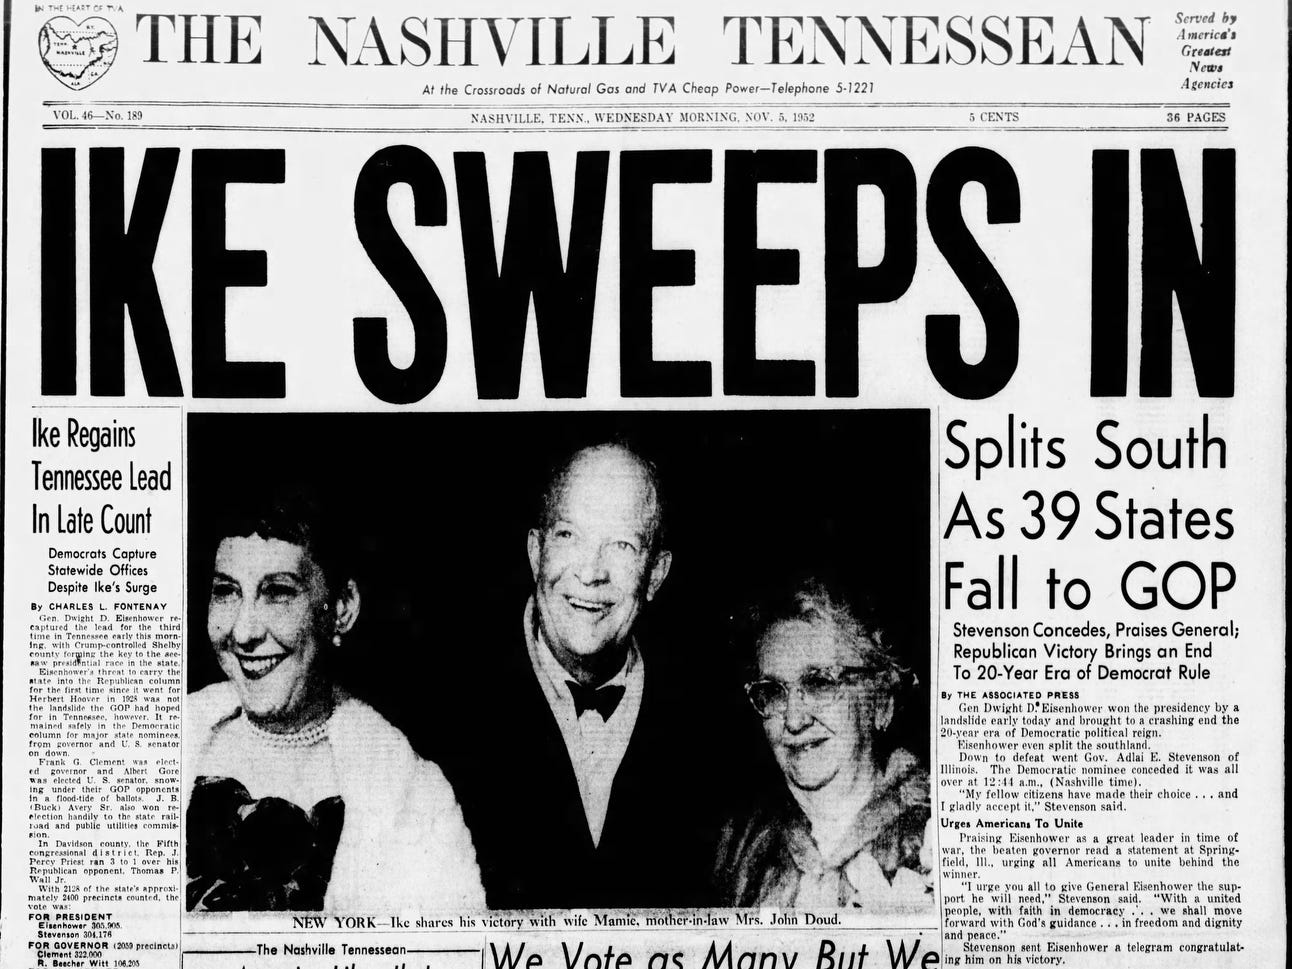 The front page of the Nov. 5, 1952 of The Tennessean which Dwight D. Eisenhower won the presidential election.